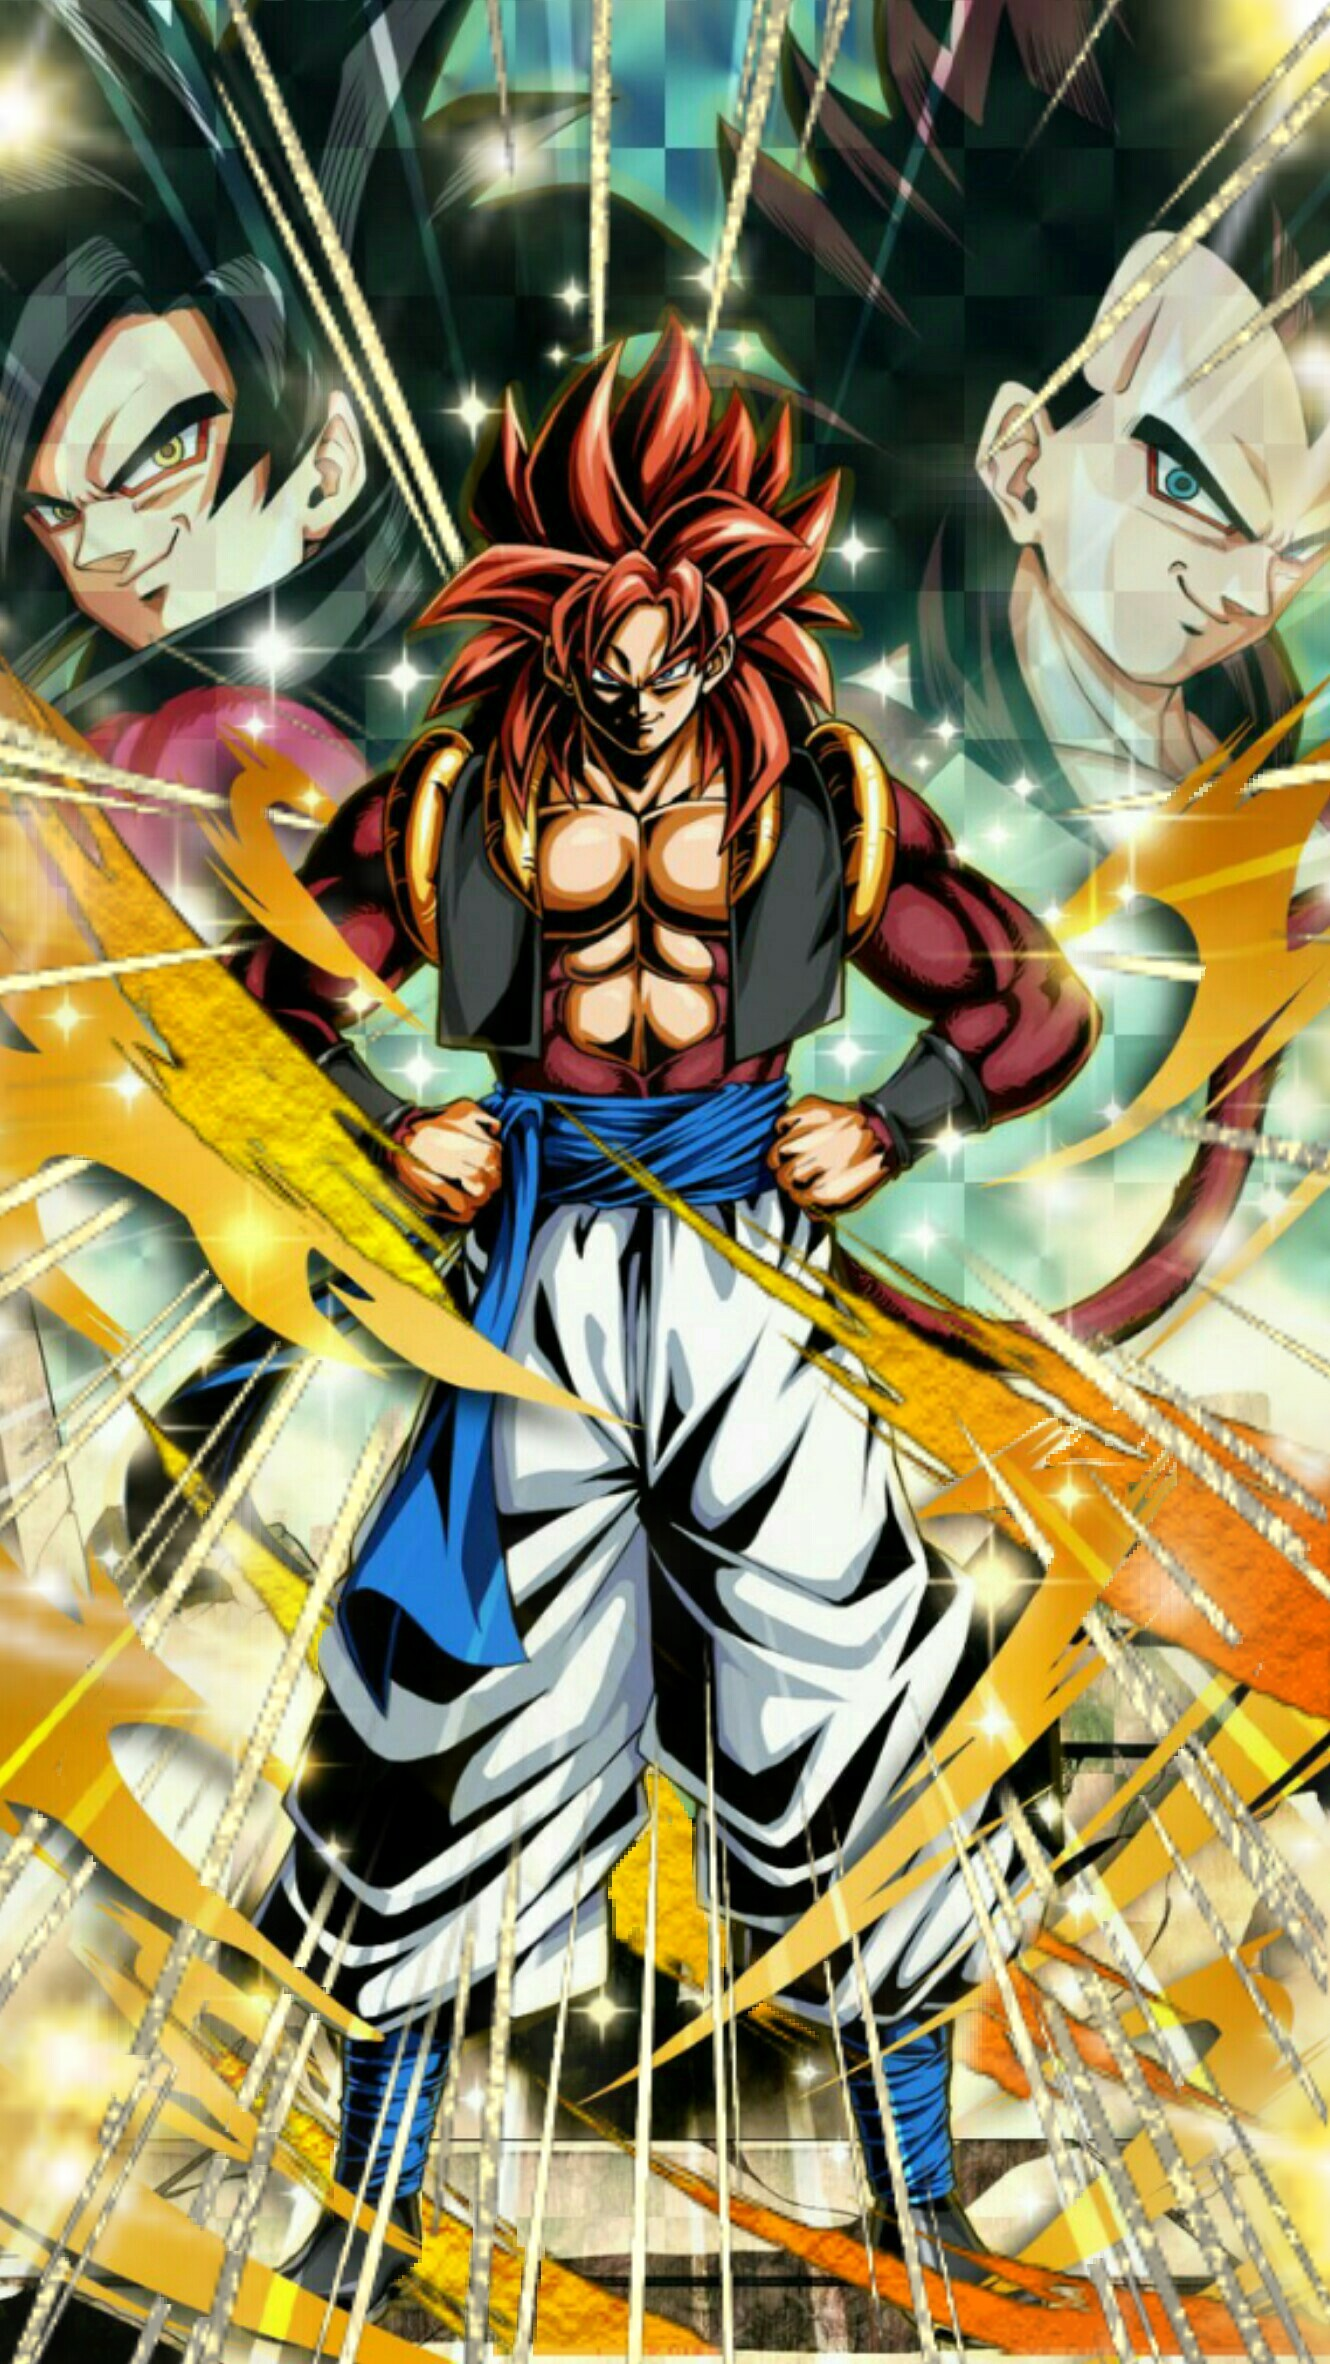 Gogeta Ss4 Wallpapers Hd Wallpaper Collections 4kwallpaper Wiki